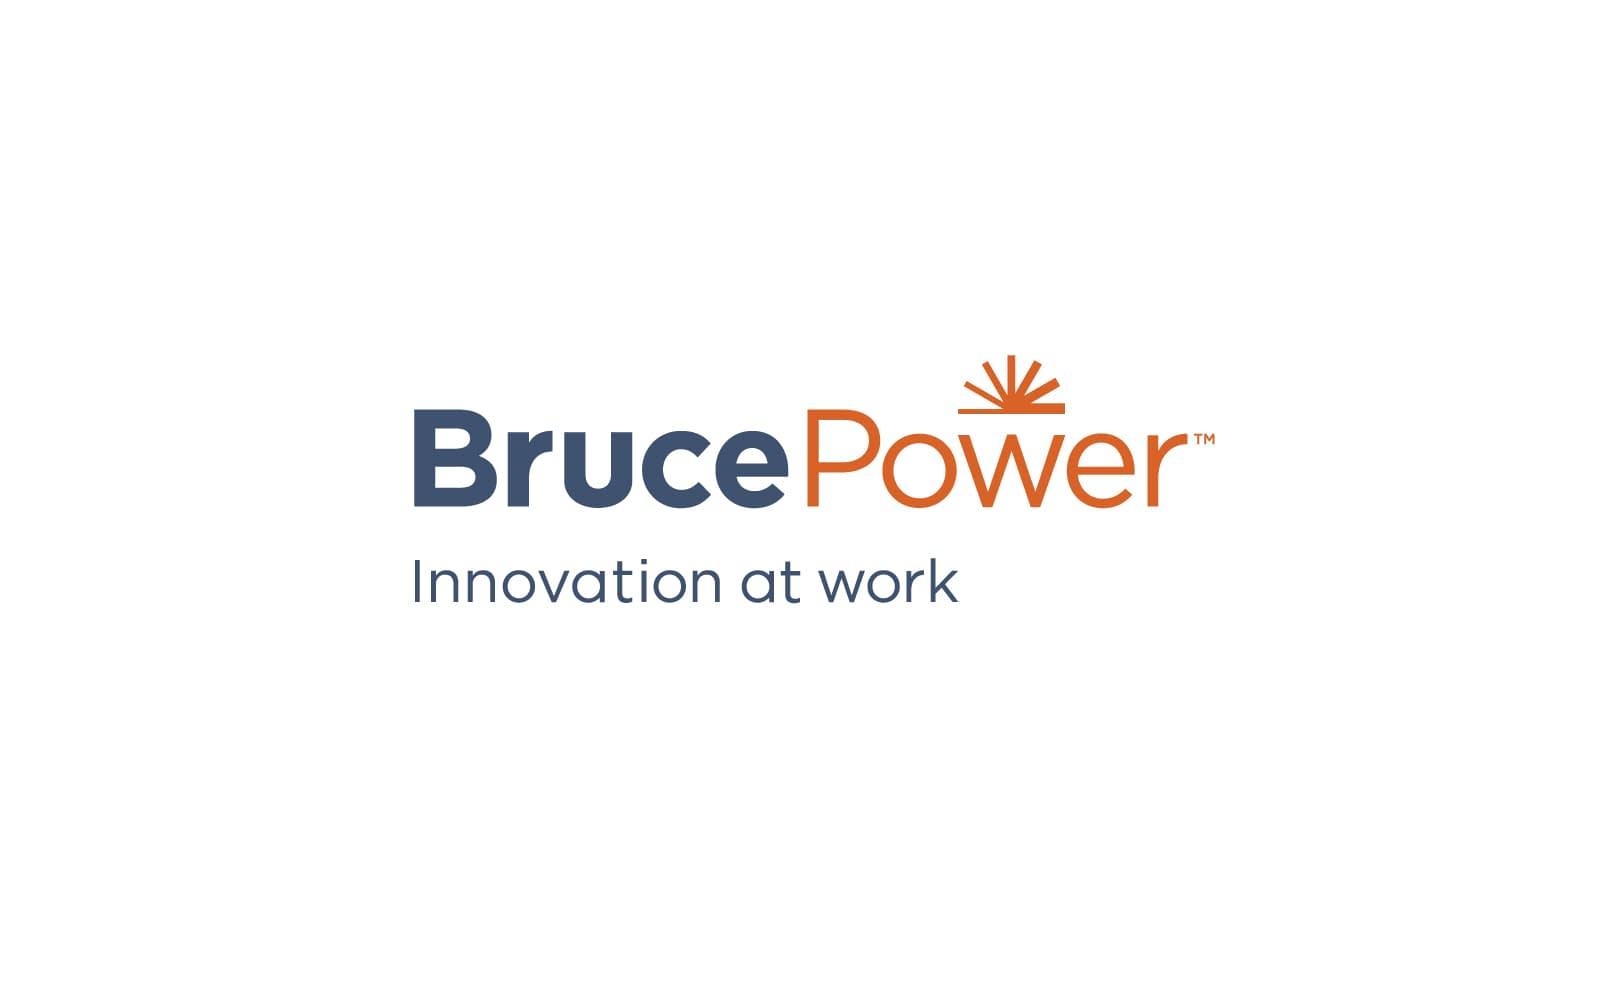 Bruce Power is asking staff who can work from home to do so